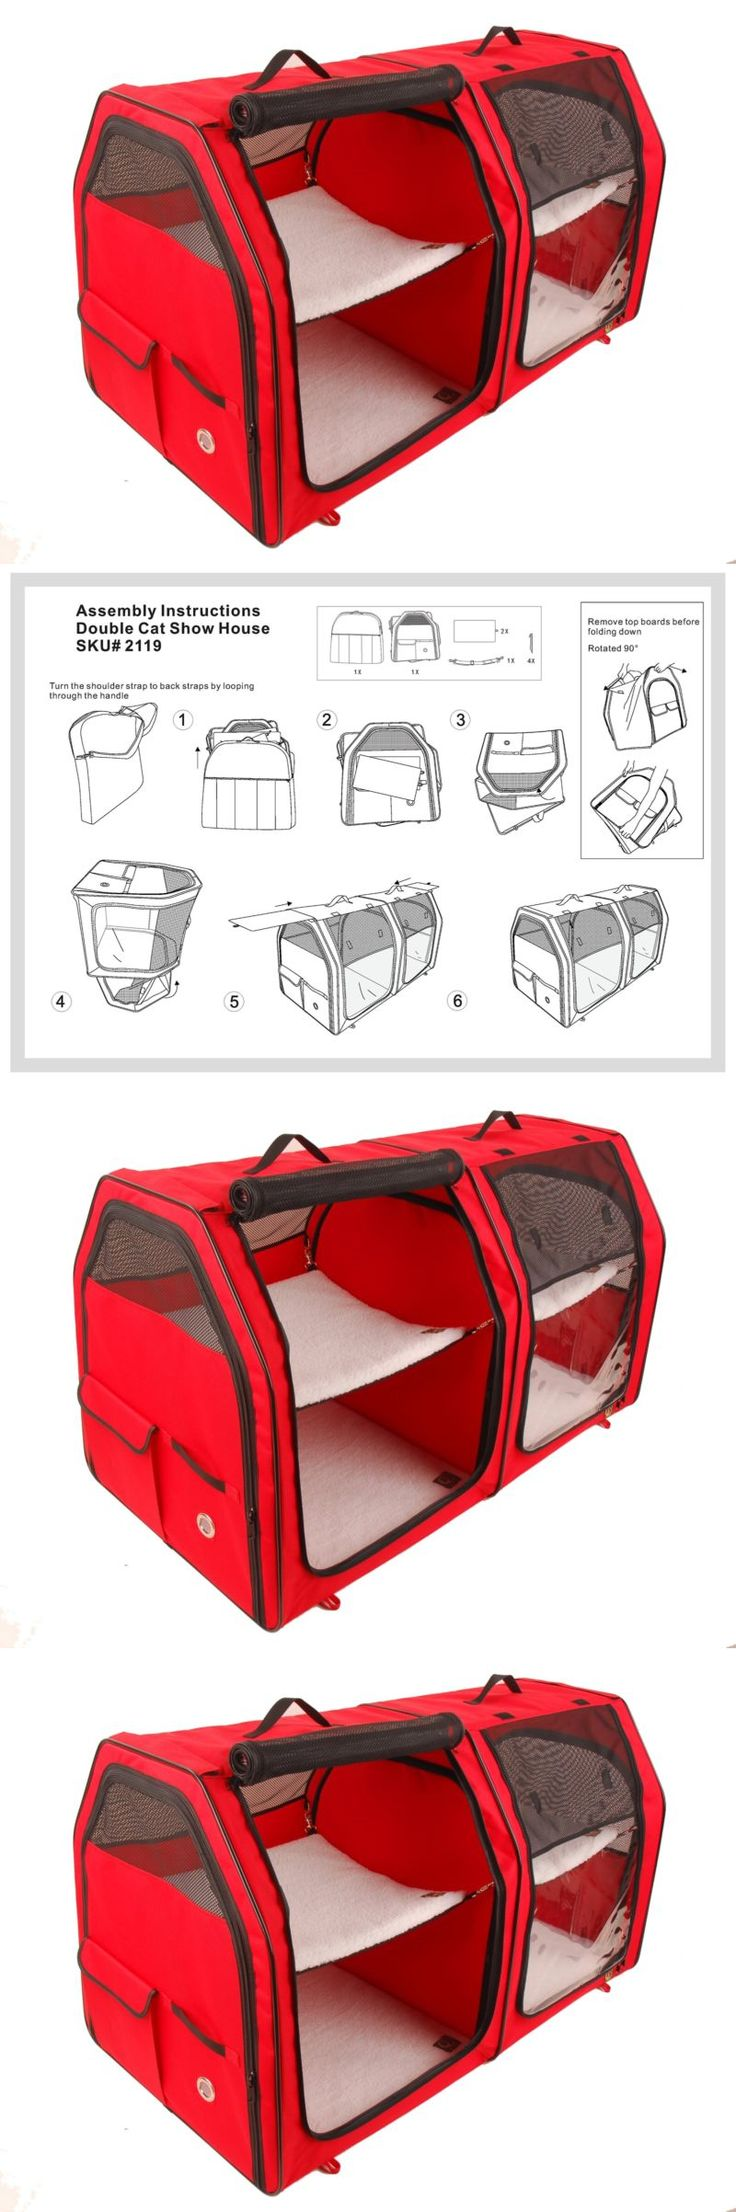 Carriers and Crates 116362: One For Pets Double Cat Show House Portable Dog Kennel Shelter, Red, 24?X2 -> BUY IT NOW ONLY: $149.38 on eBay!